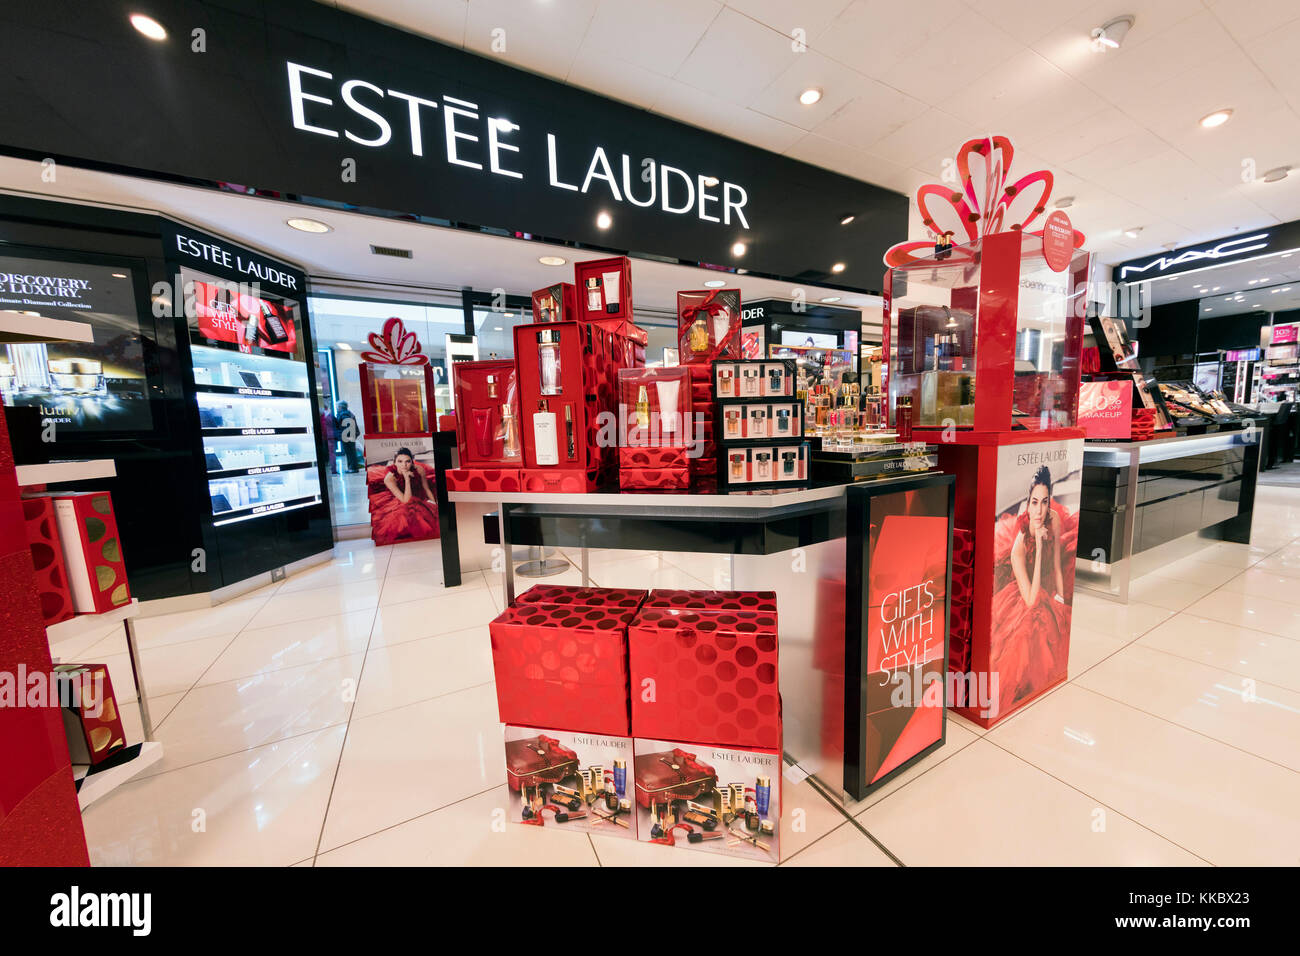 Estee Lauder counter in a store, UK. - Stock Image